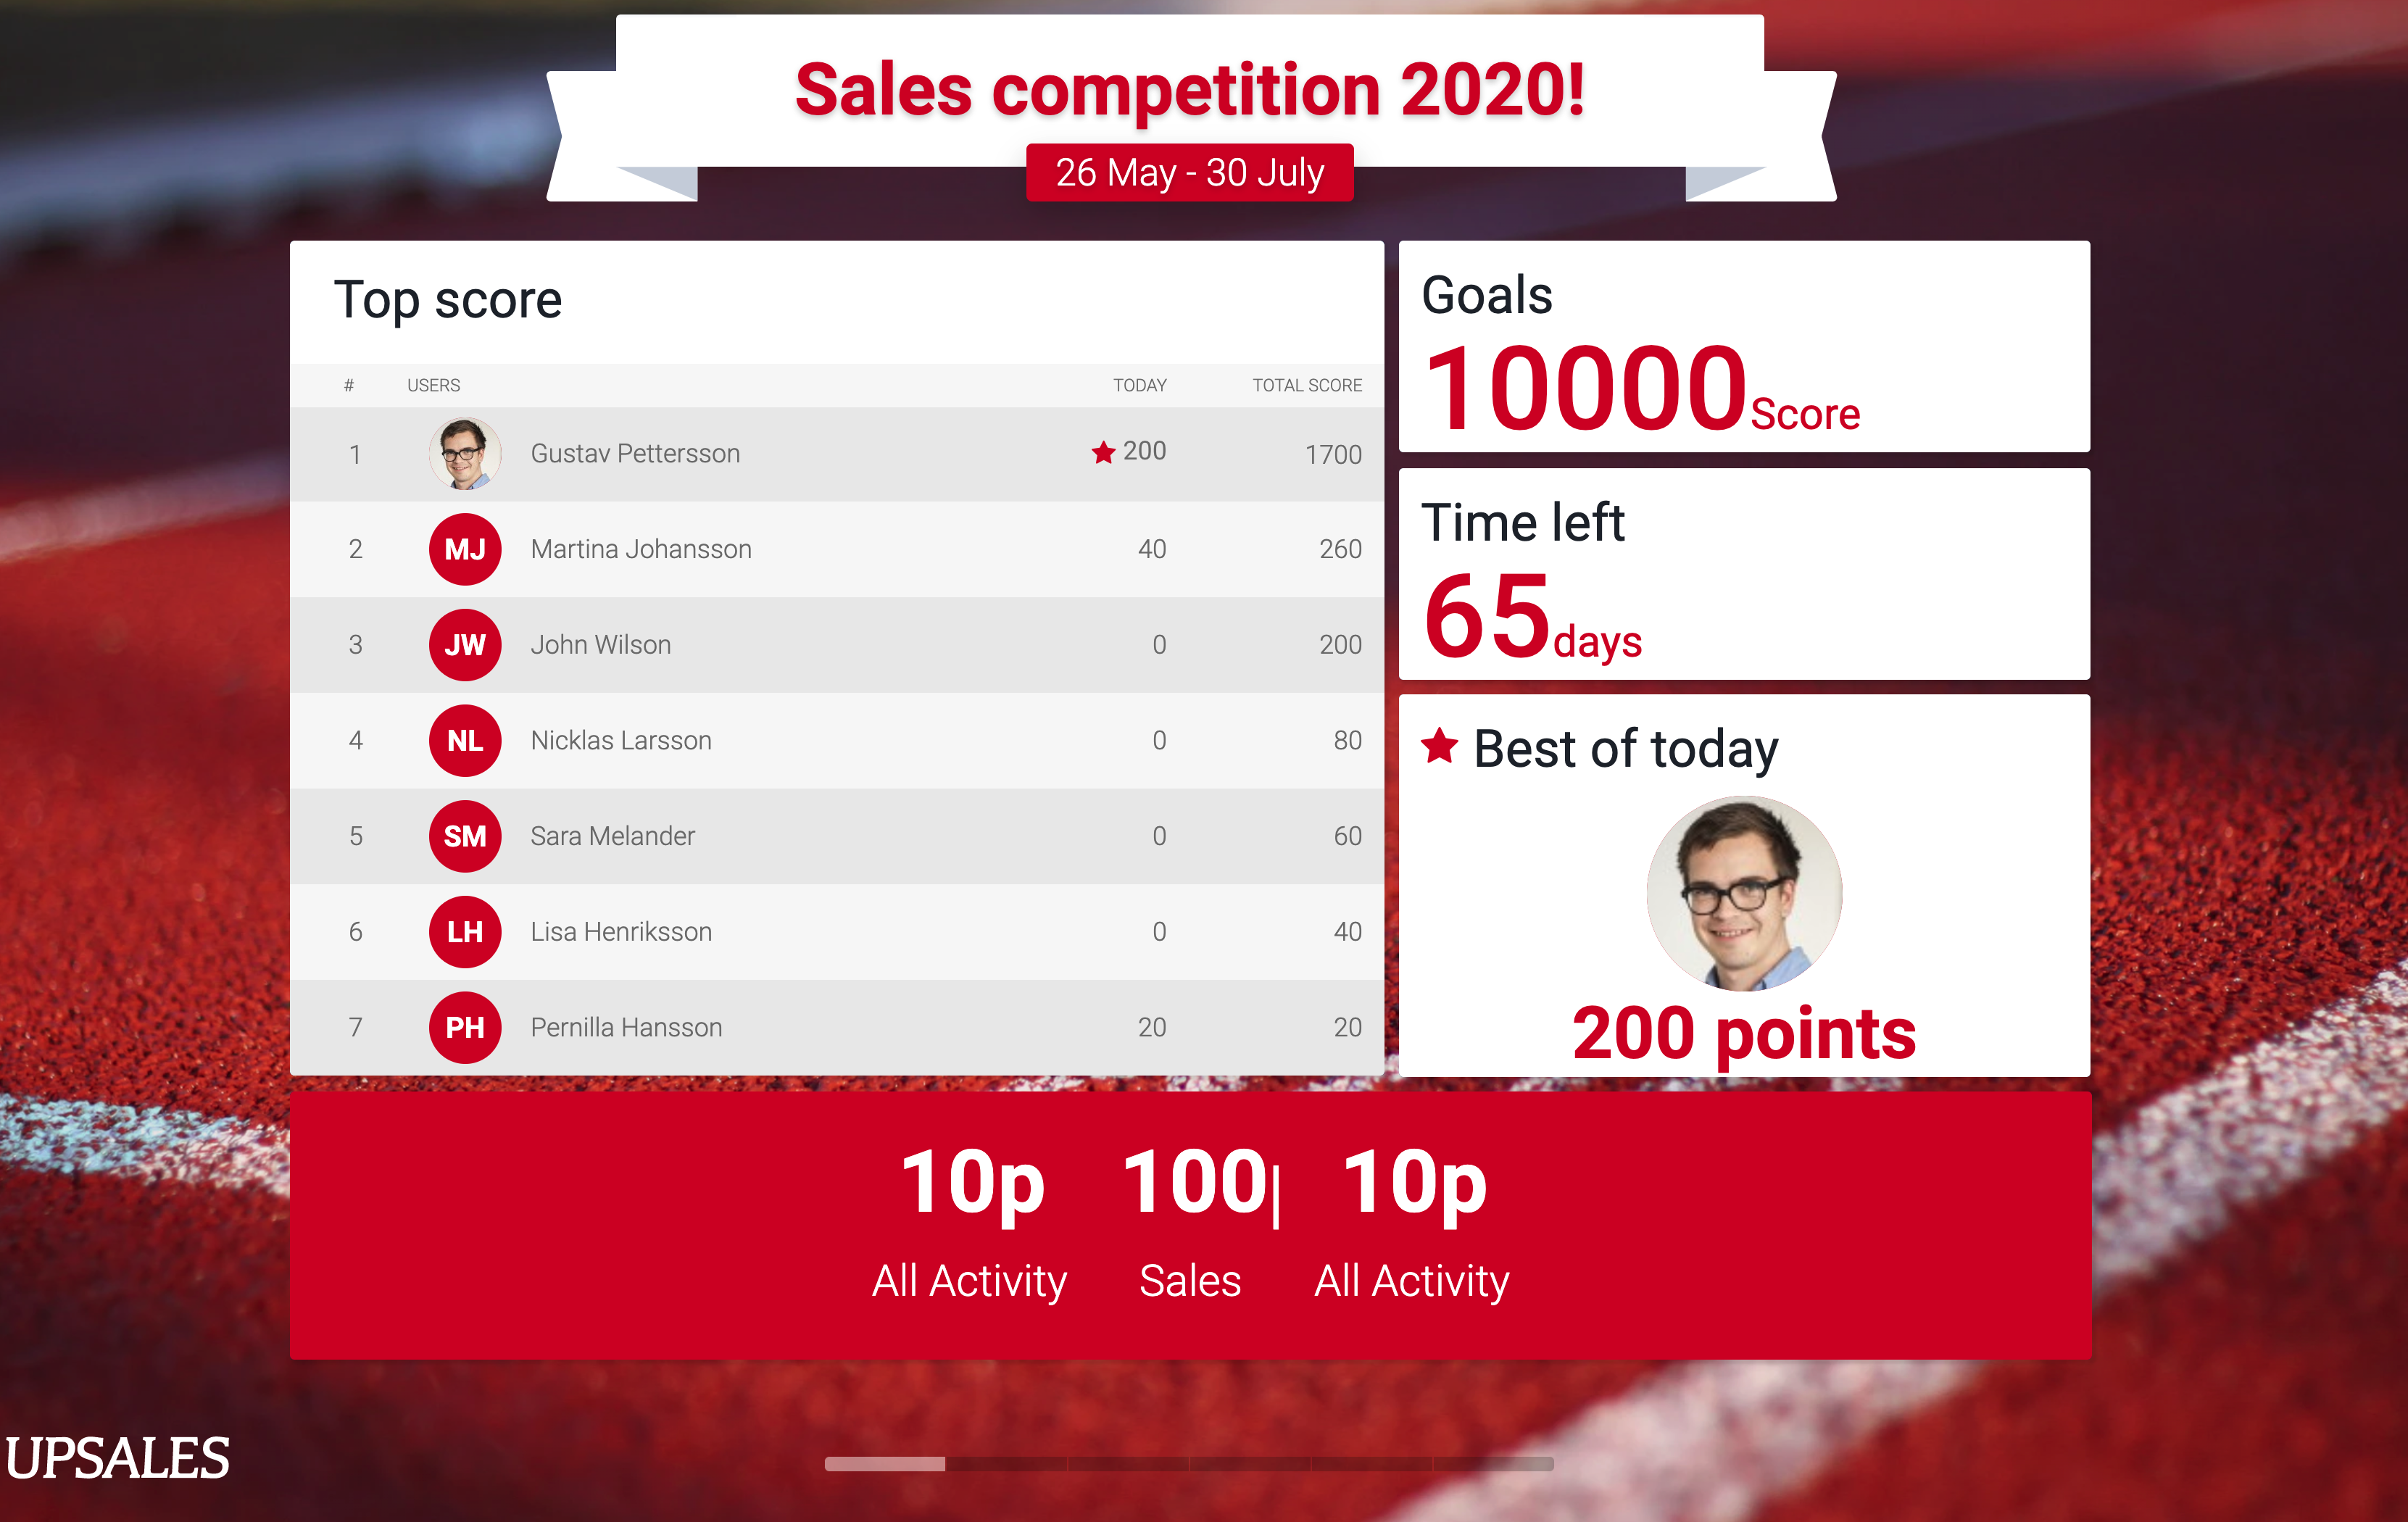 Upsales TV competition mode